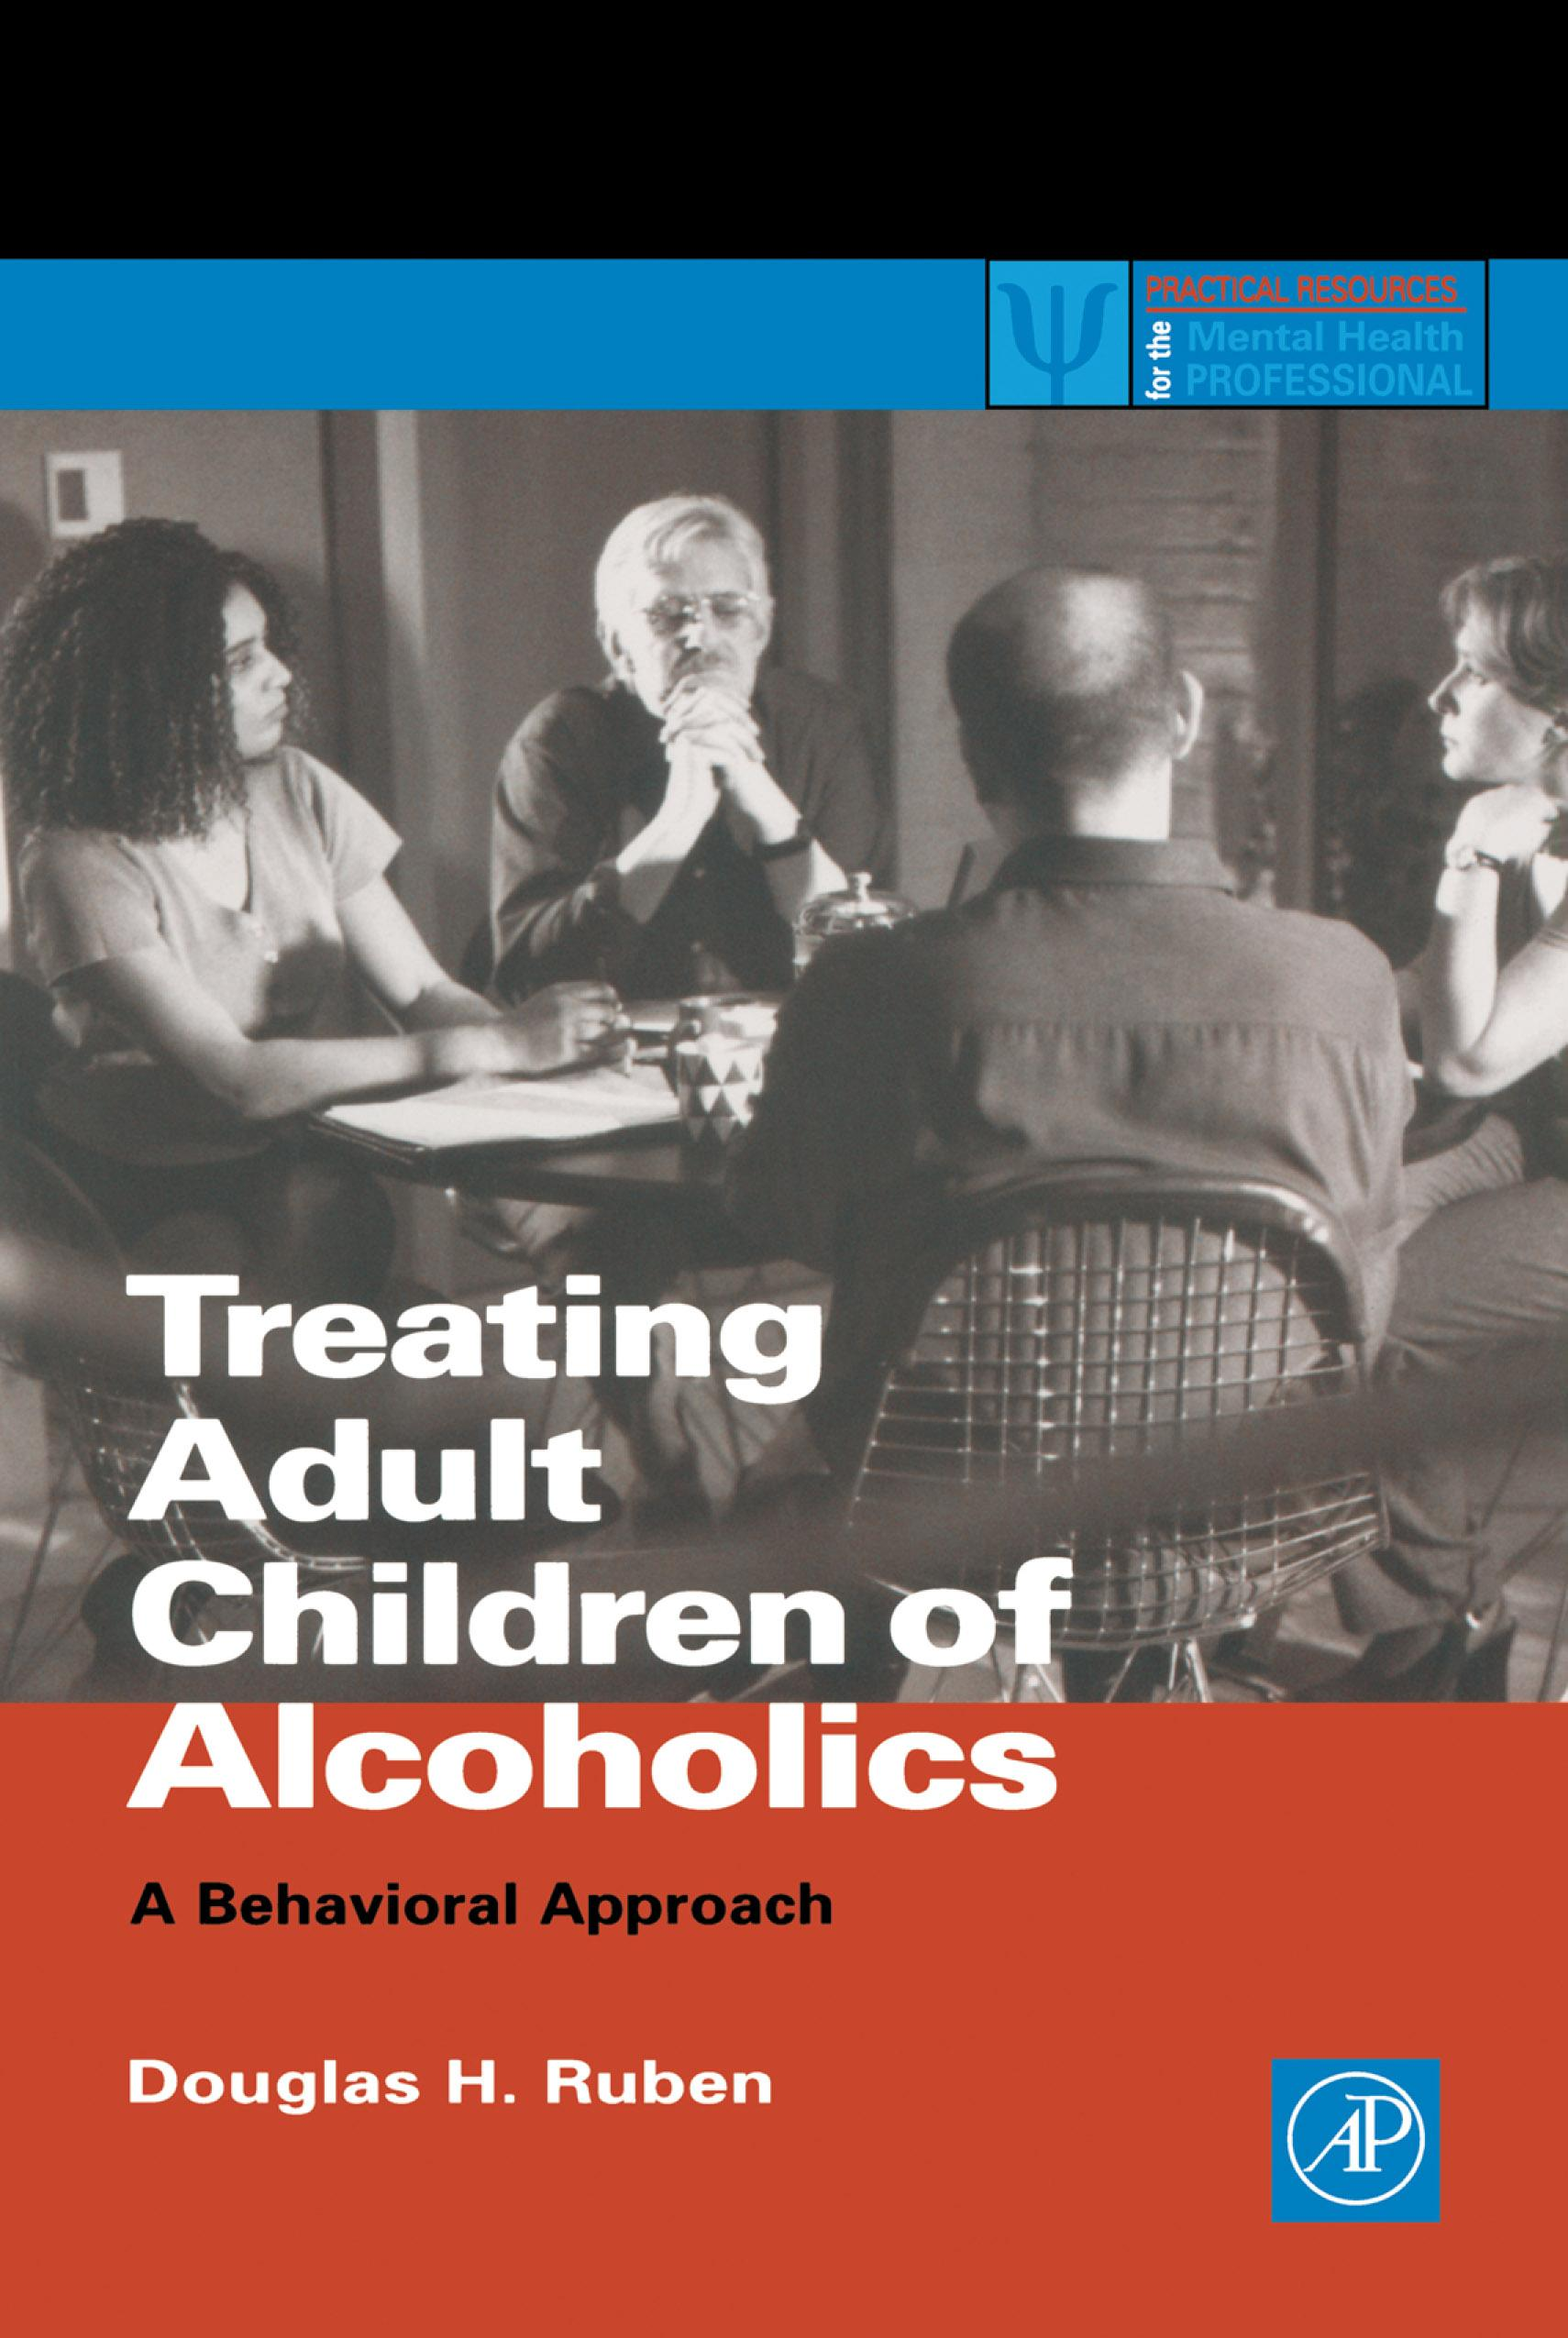 Treating Adult Children of Alcoholics: A Behavioral Approach EB9780080519654